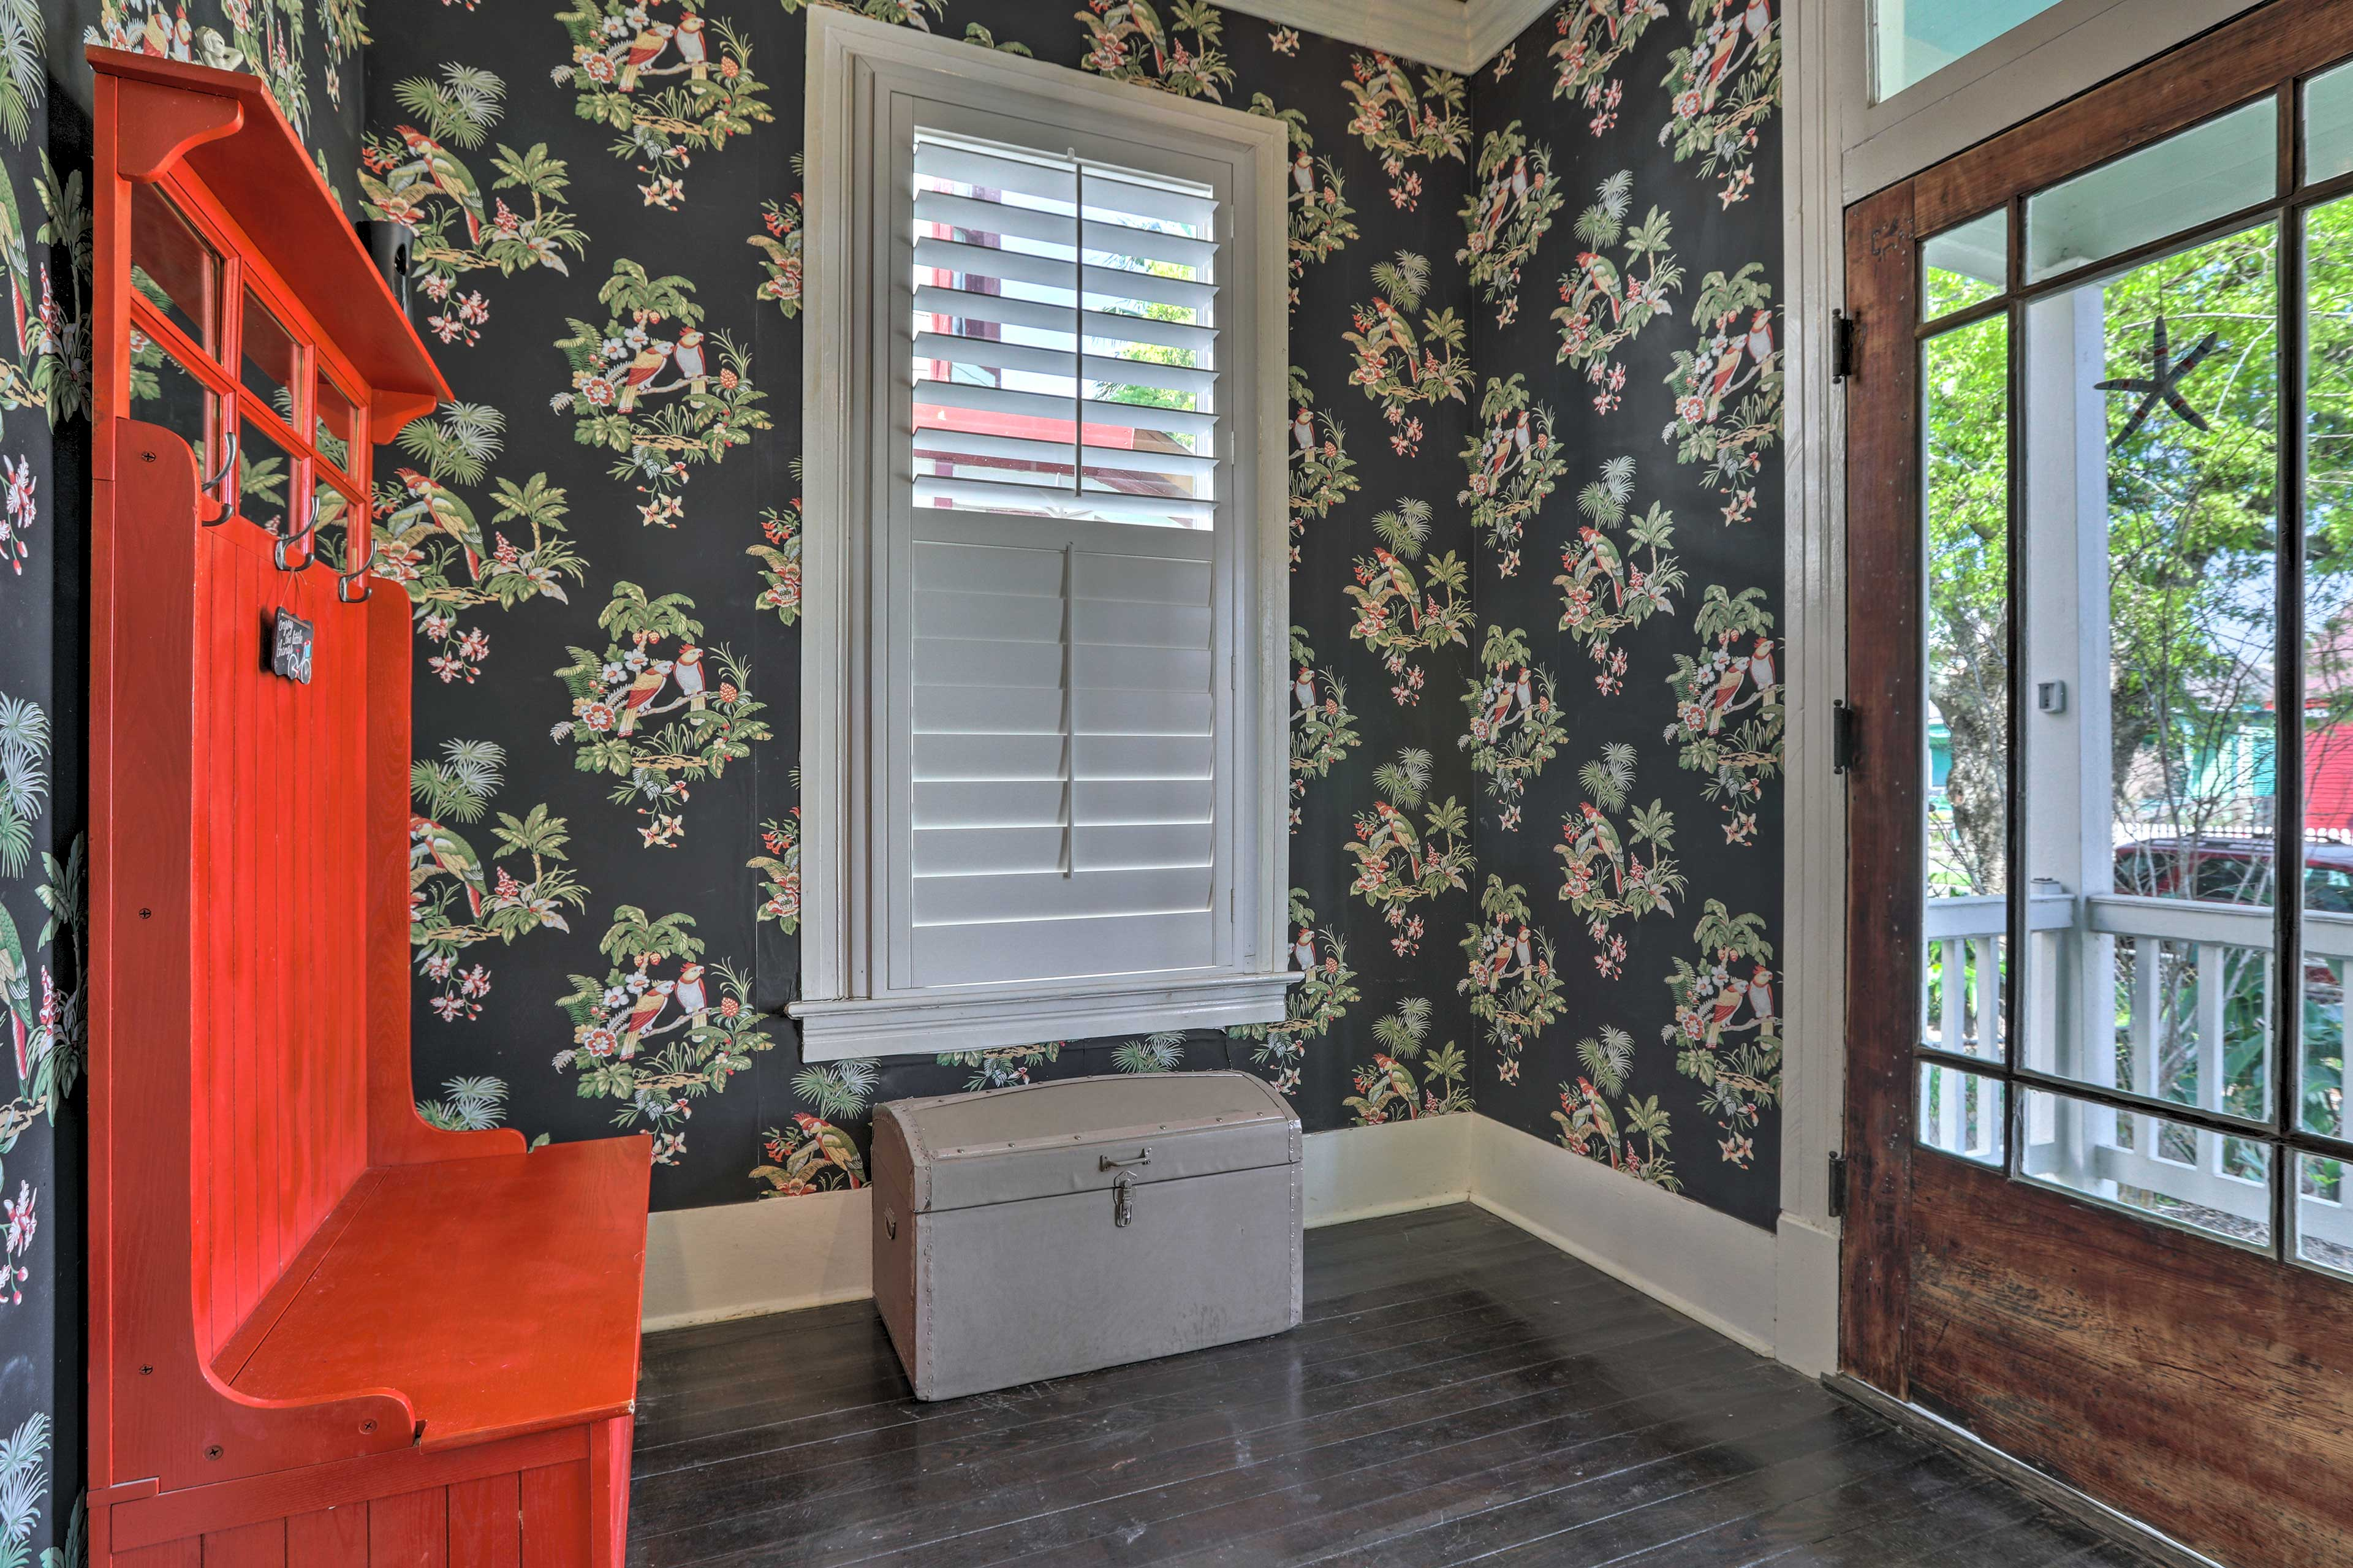 Switch into vacation mode the moment you step inside the cute entry way!